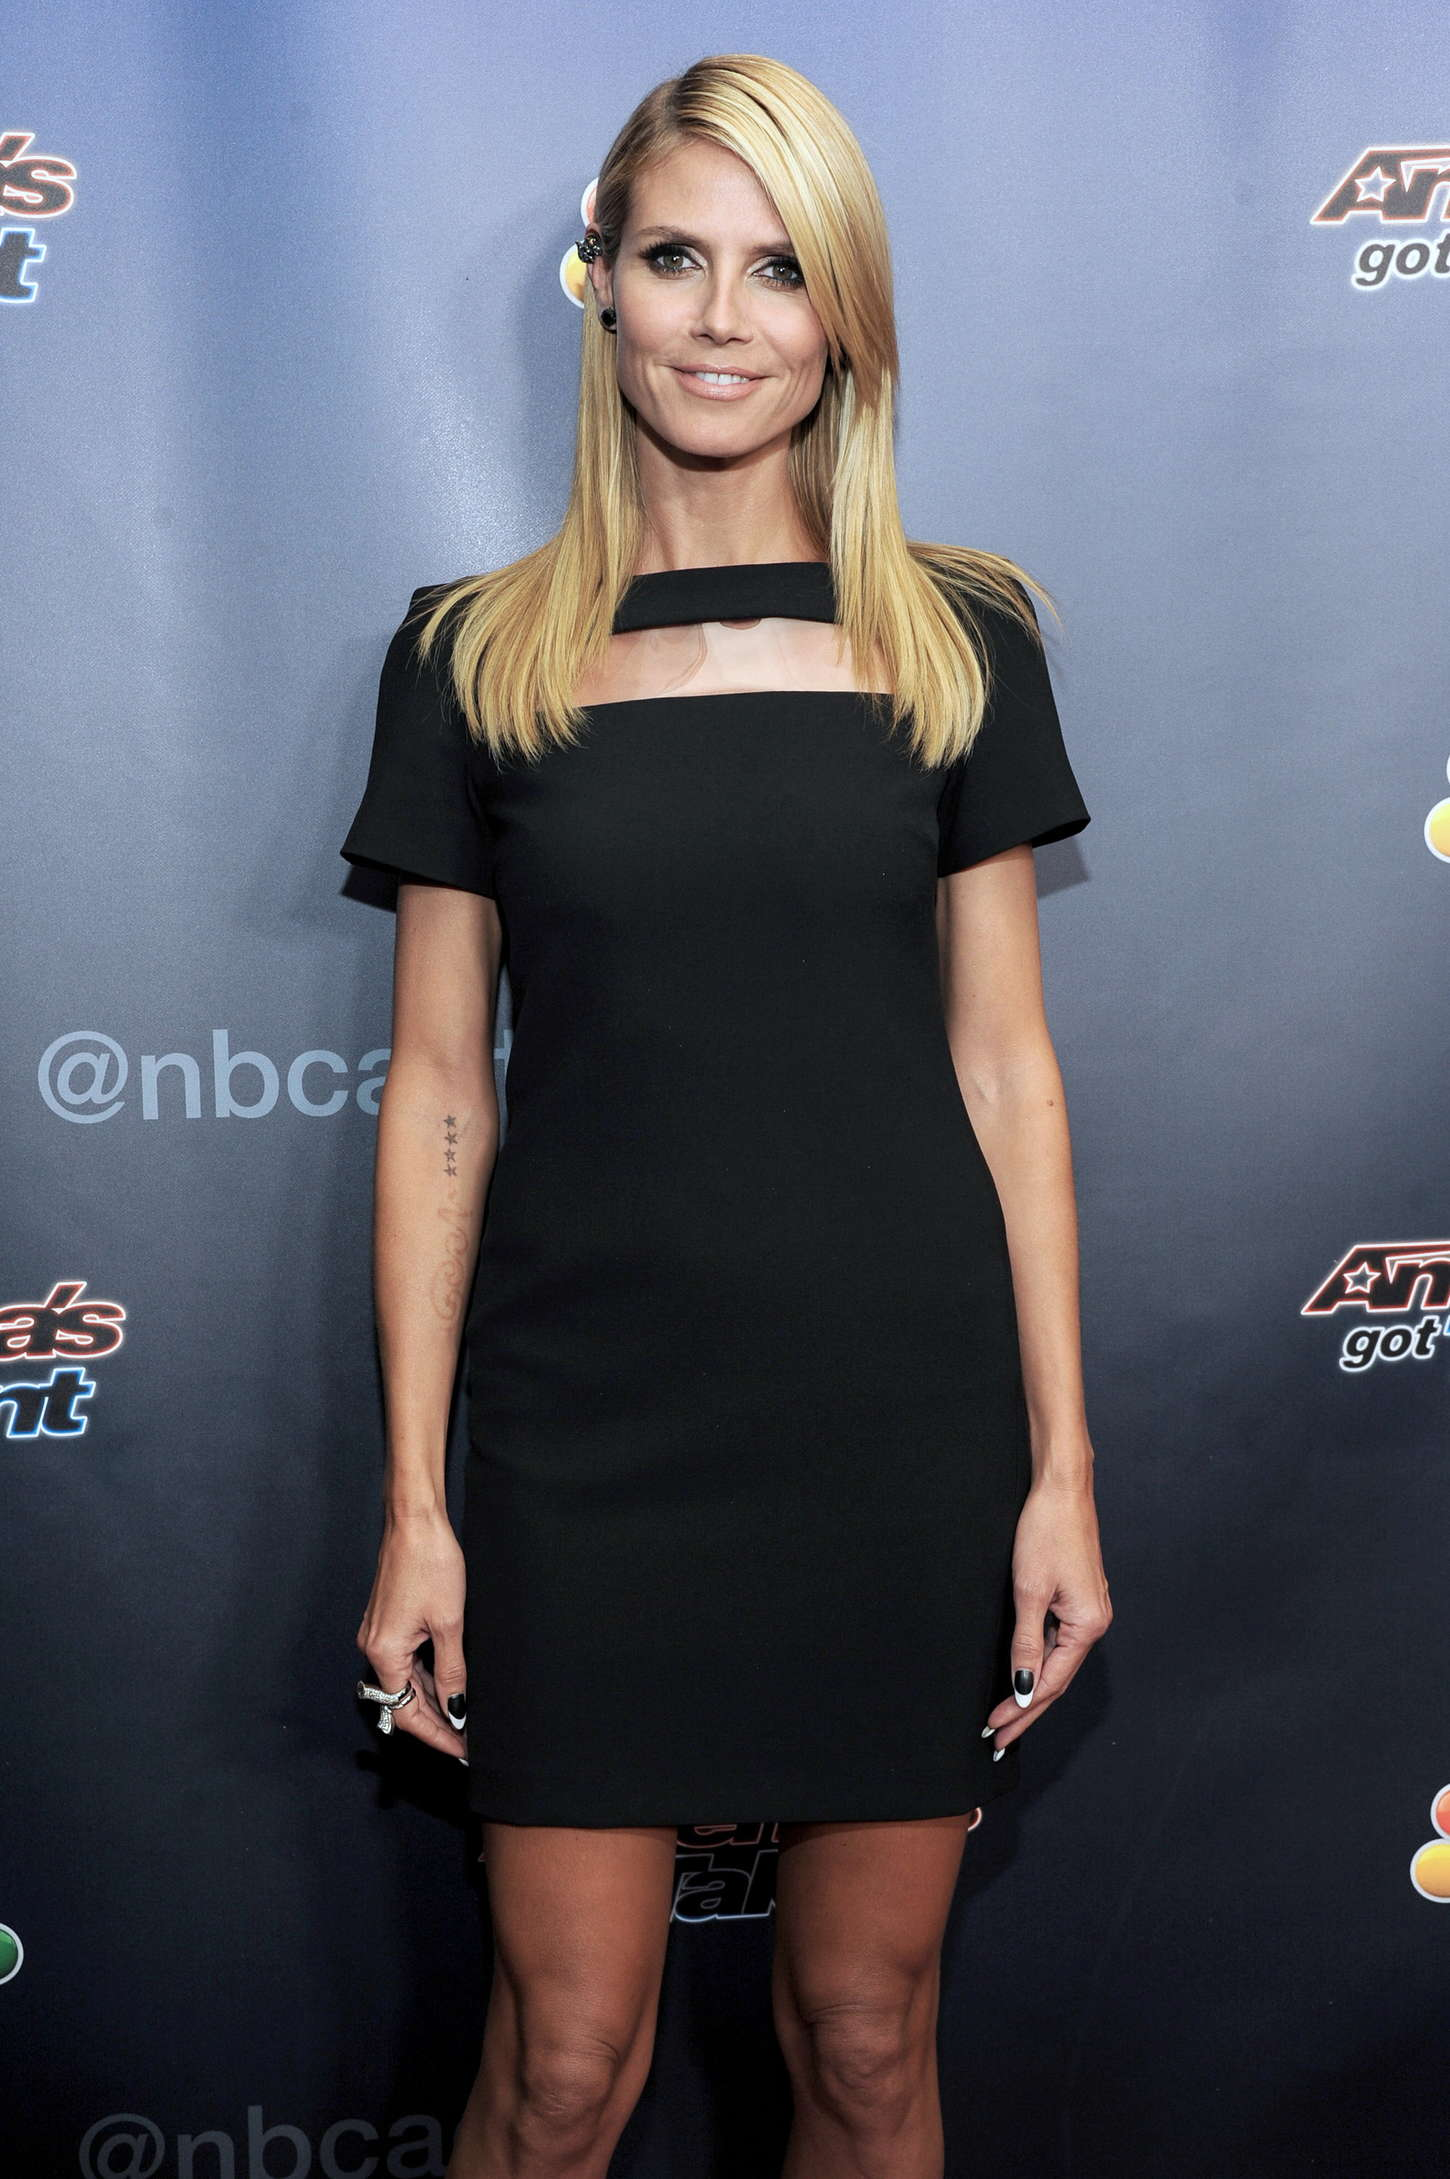 Heidi Klum - America's Got Talent Season 9 Post Show Red Carpet Event in NYC